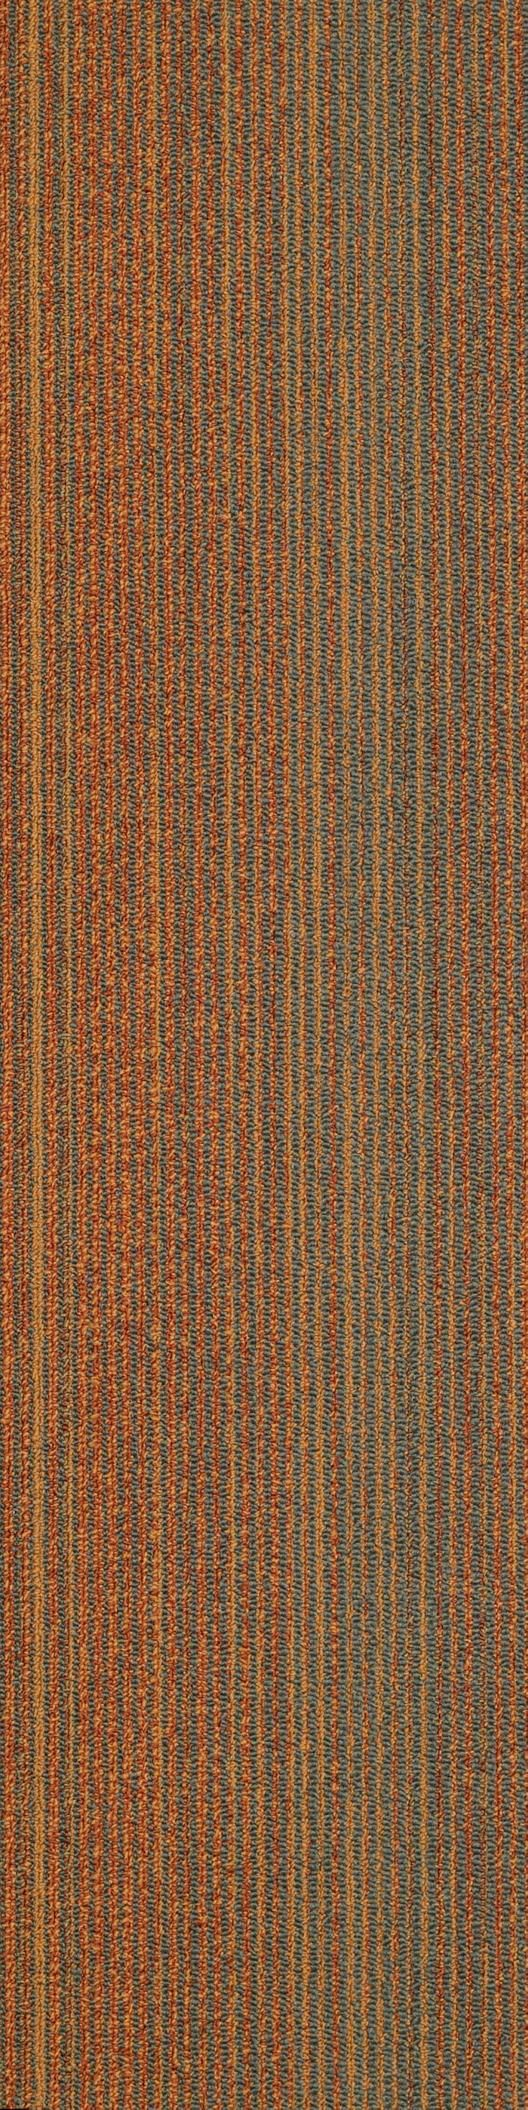 65 best carpet tile images on pinterest shaw contract view the commercial carpet style saturate tile from shaw contract view the carpet in a room scene order samples see specifications and more baanklon Choice Image